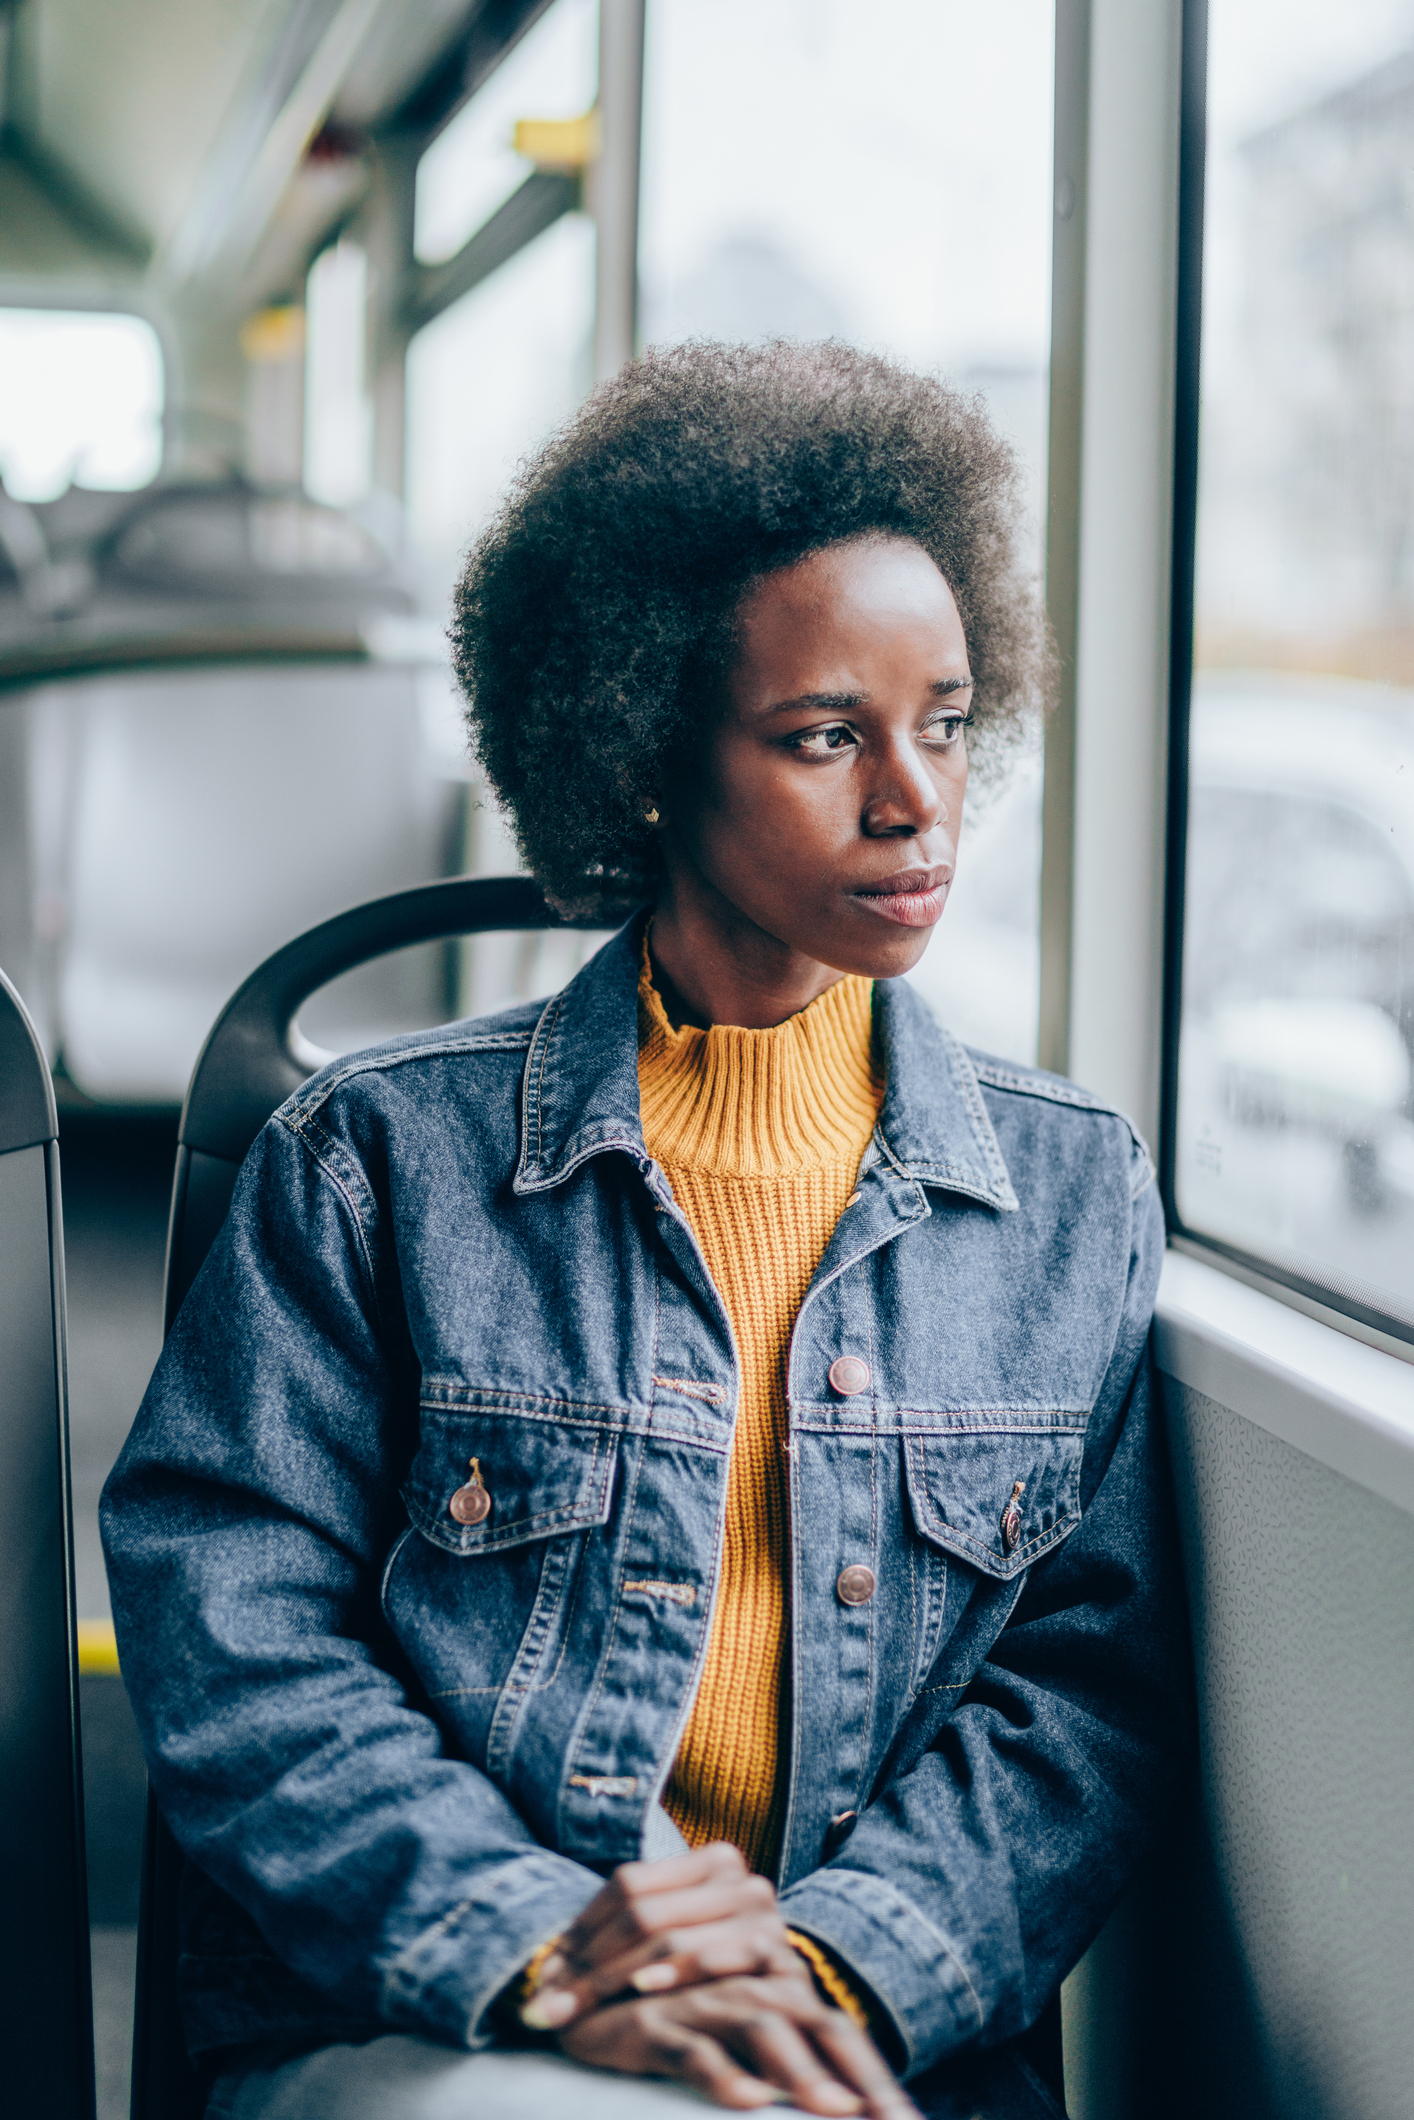 Woman traveling in bus